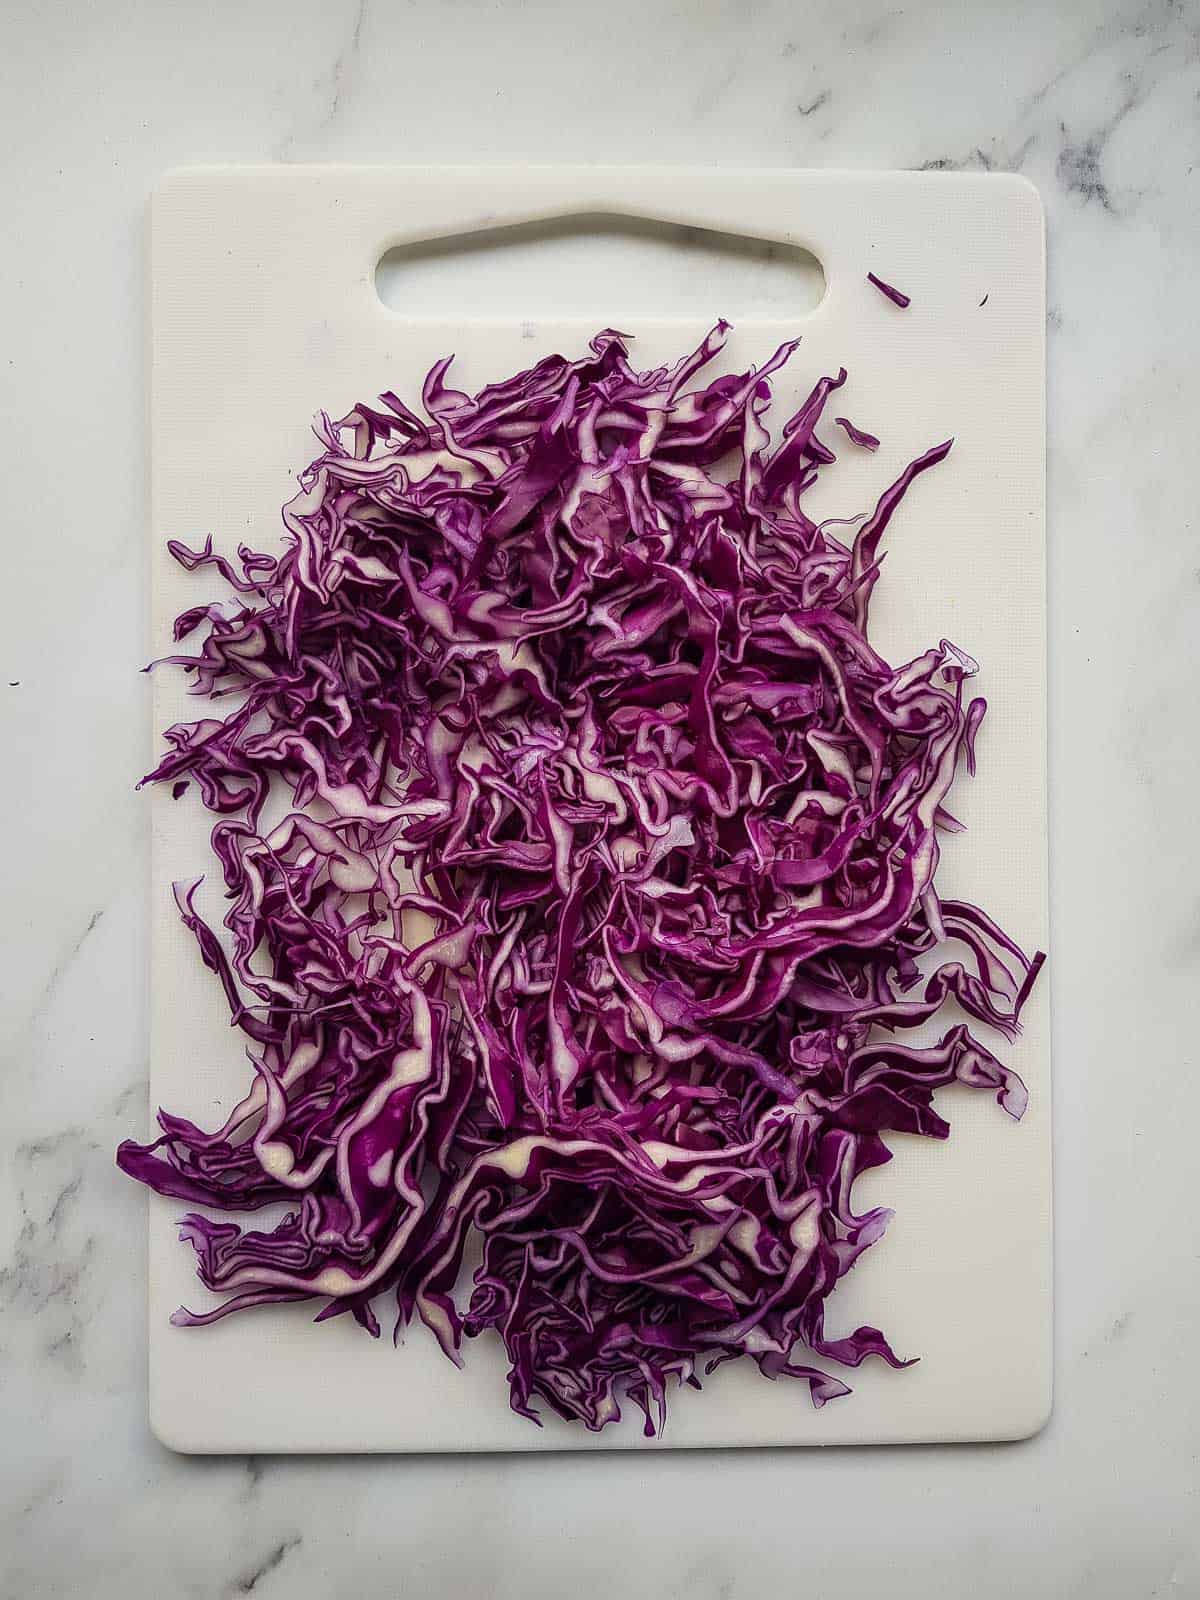 Sliced red cabbage on a chopping board.